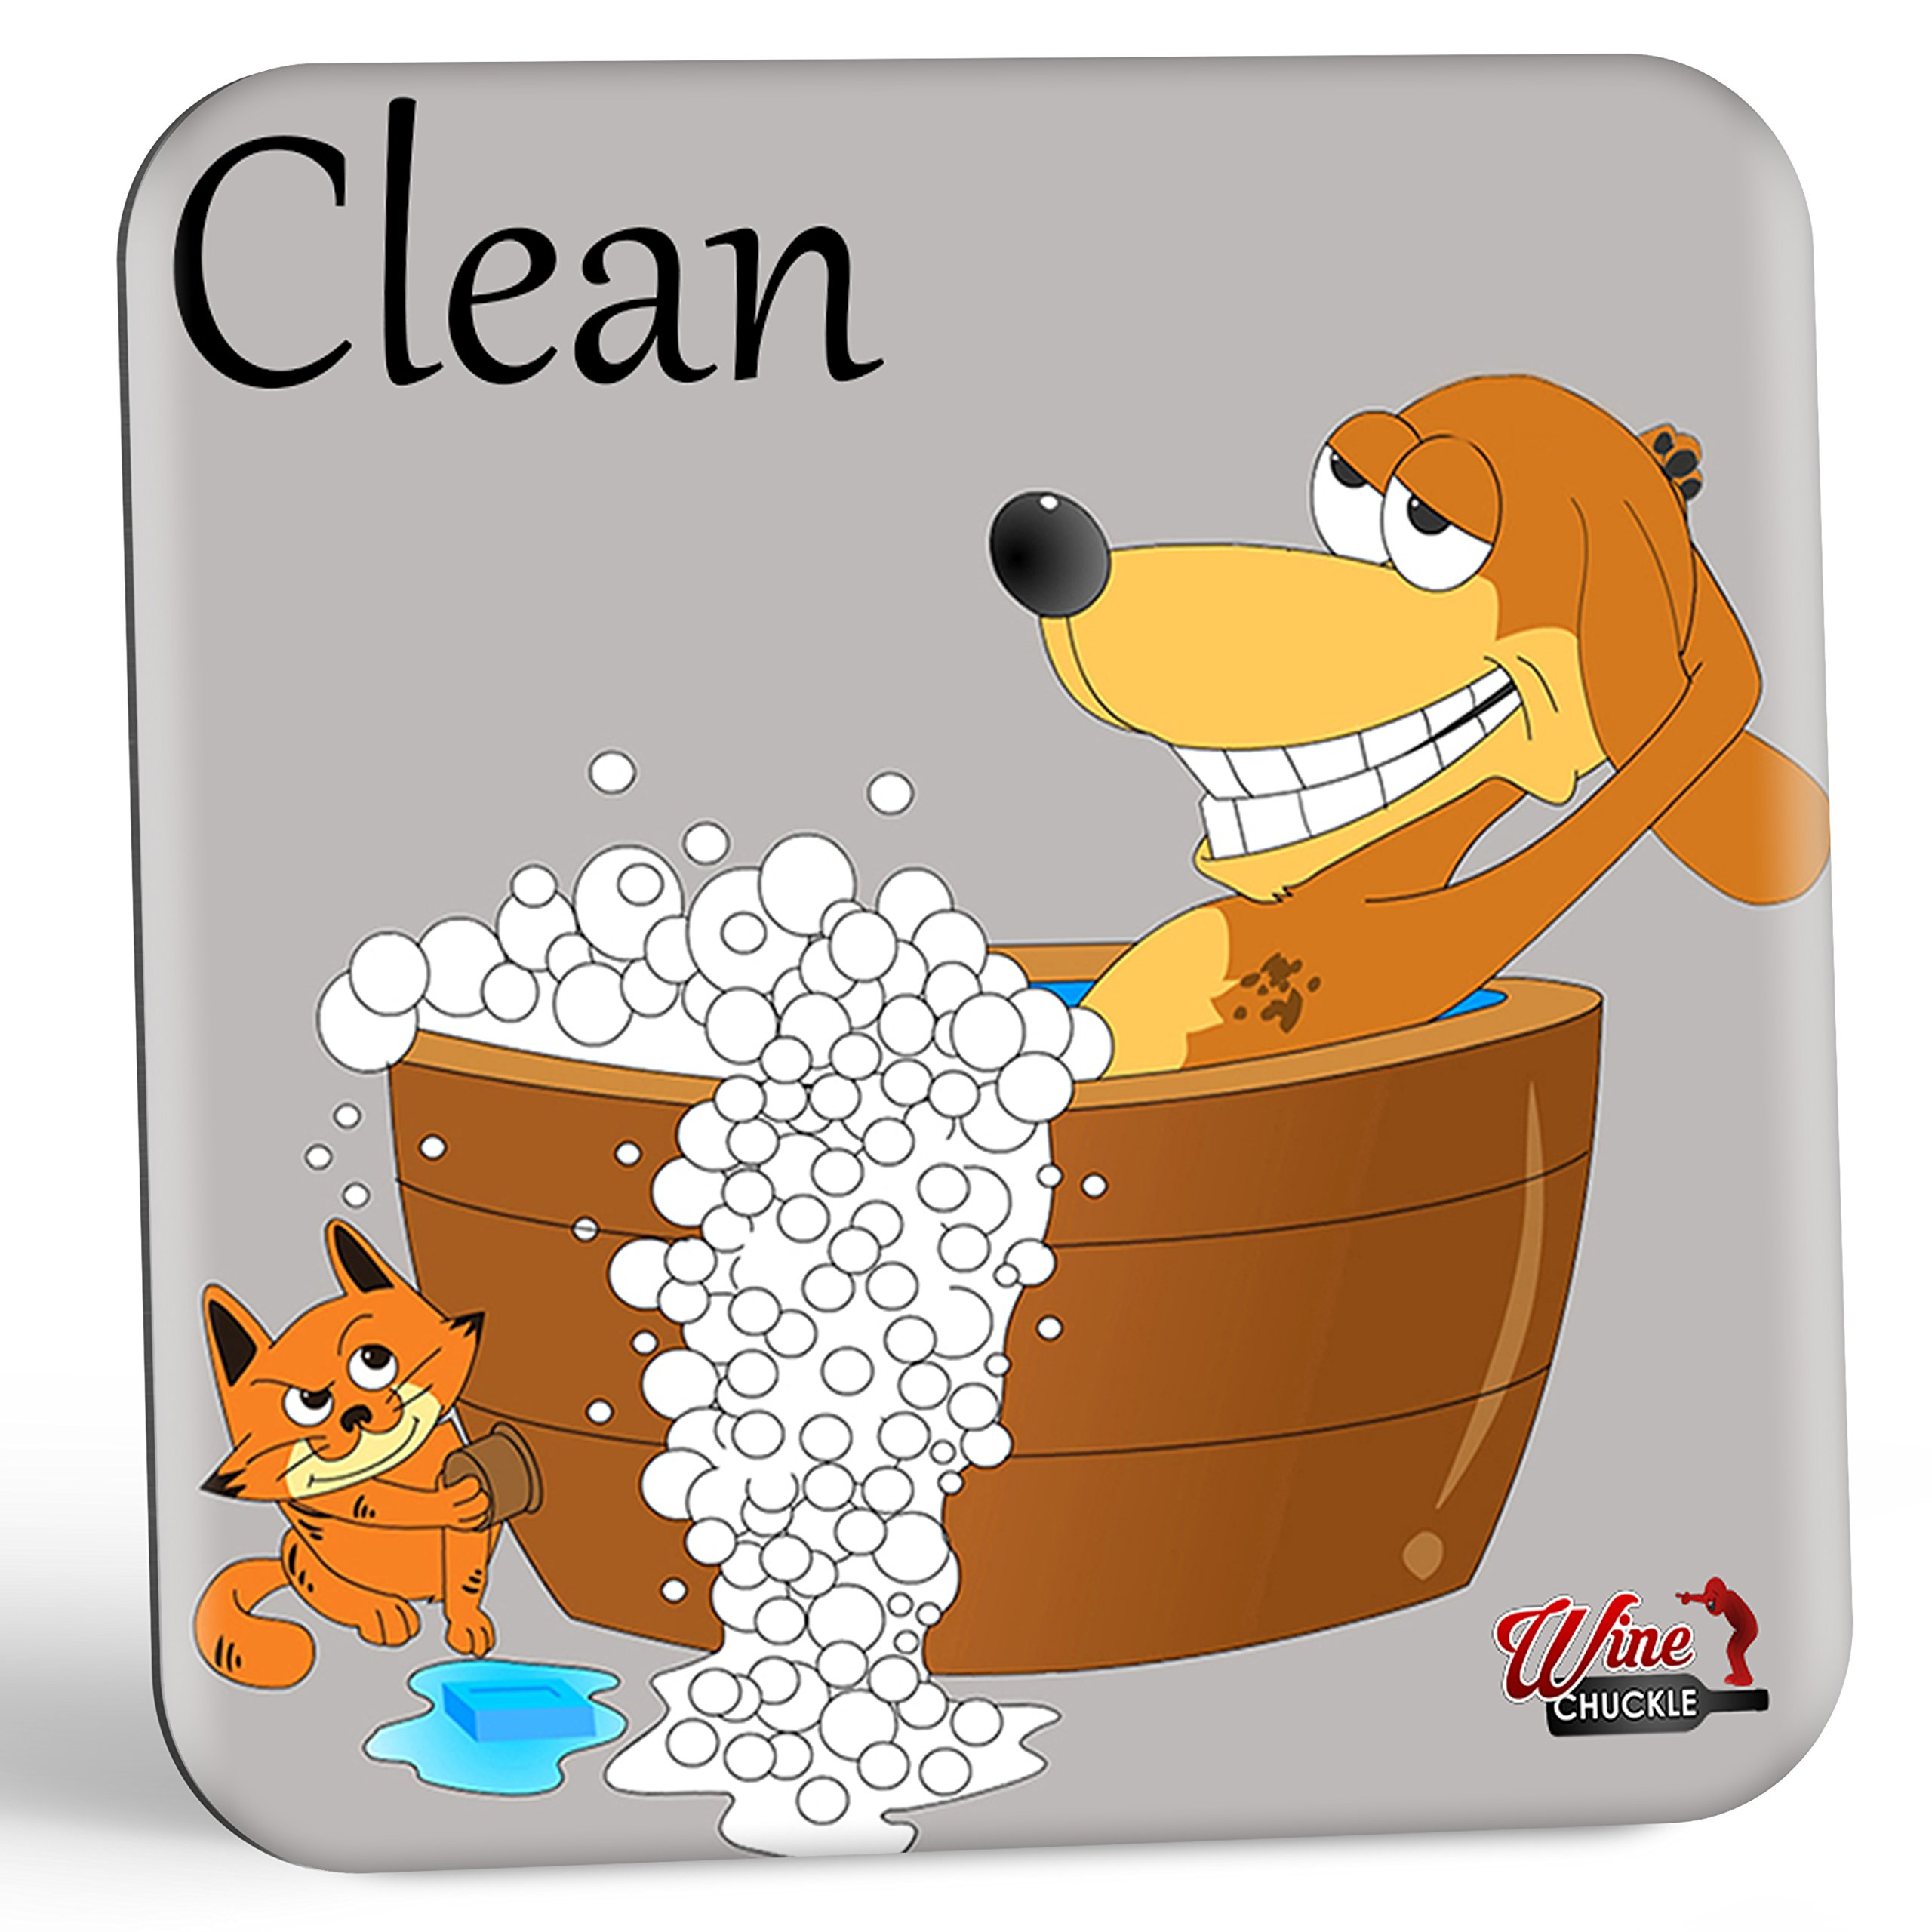 Dish Doggy Clean Dirty Dishwasher Magnet Sign - A Fun & Stylish Clean Dirty Dishwasher Sign Gift with 2 Different Fun Sides for Dog Lovers to End Wasteful Dish Mix-ups Forever